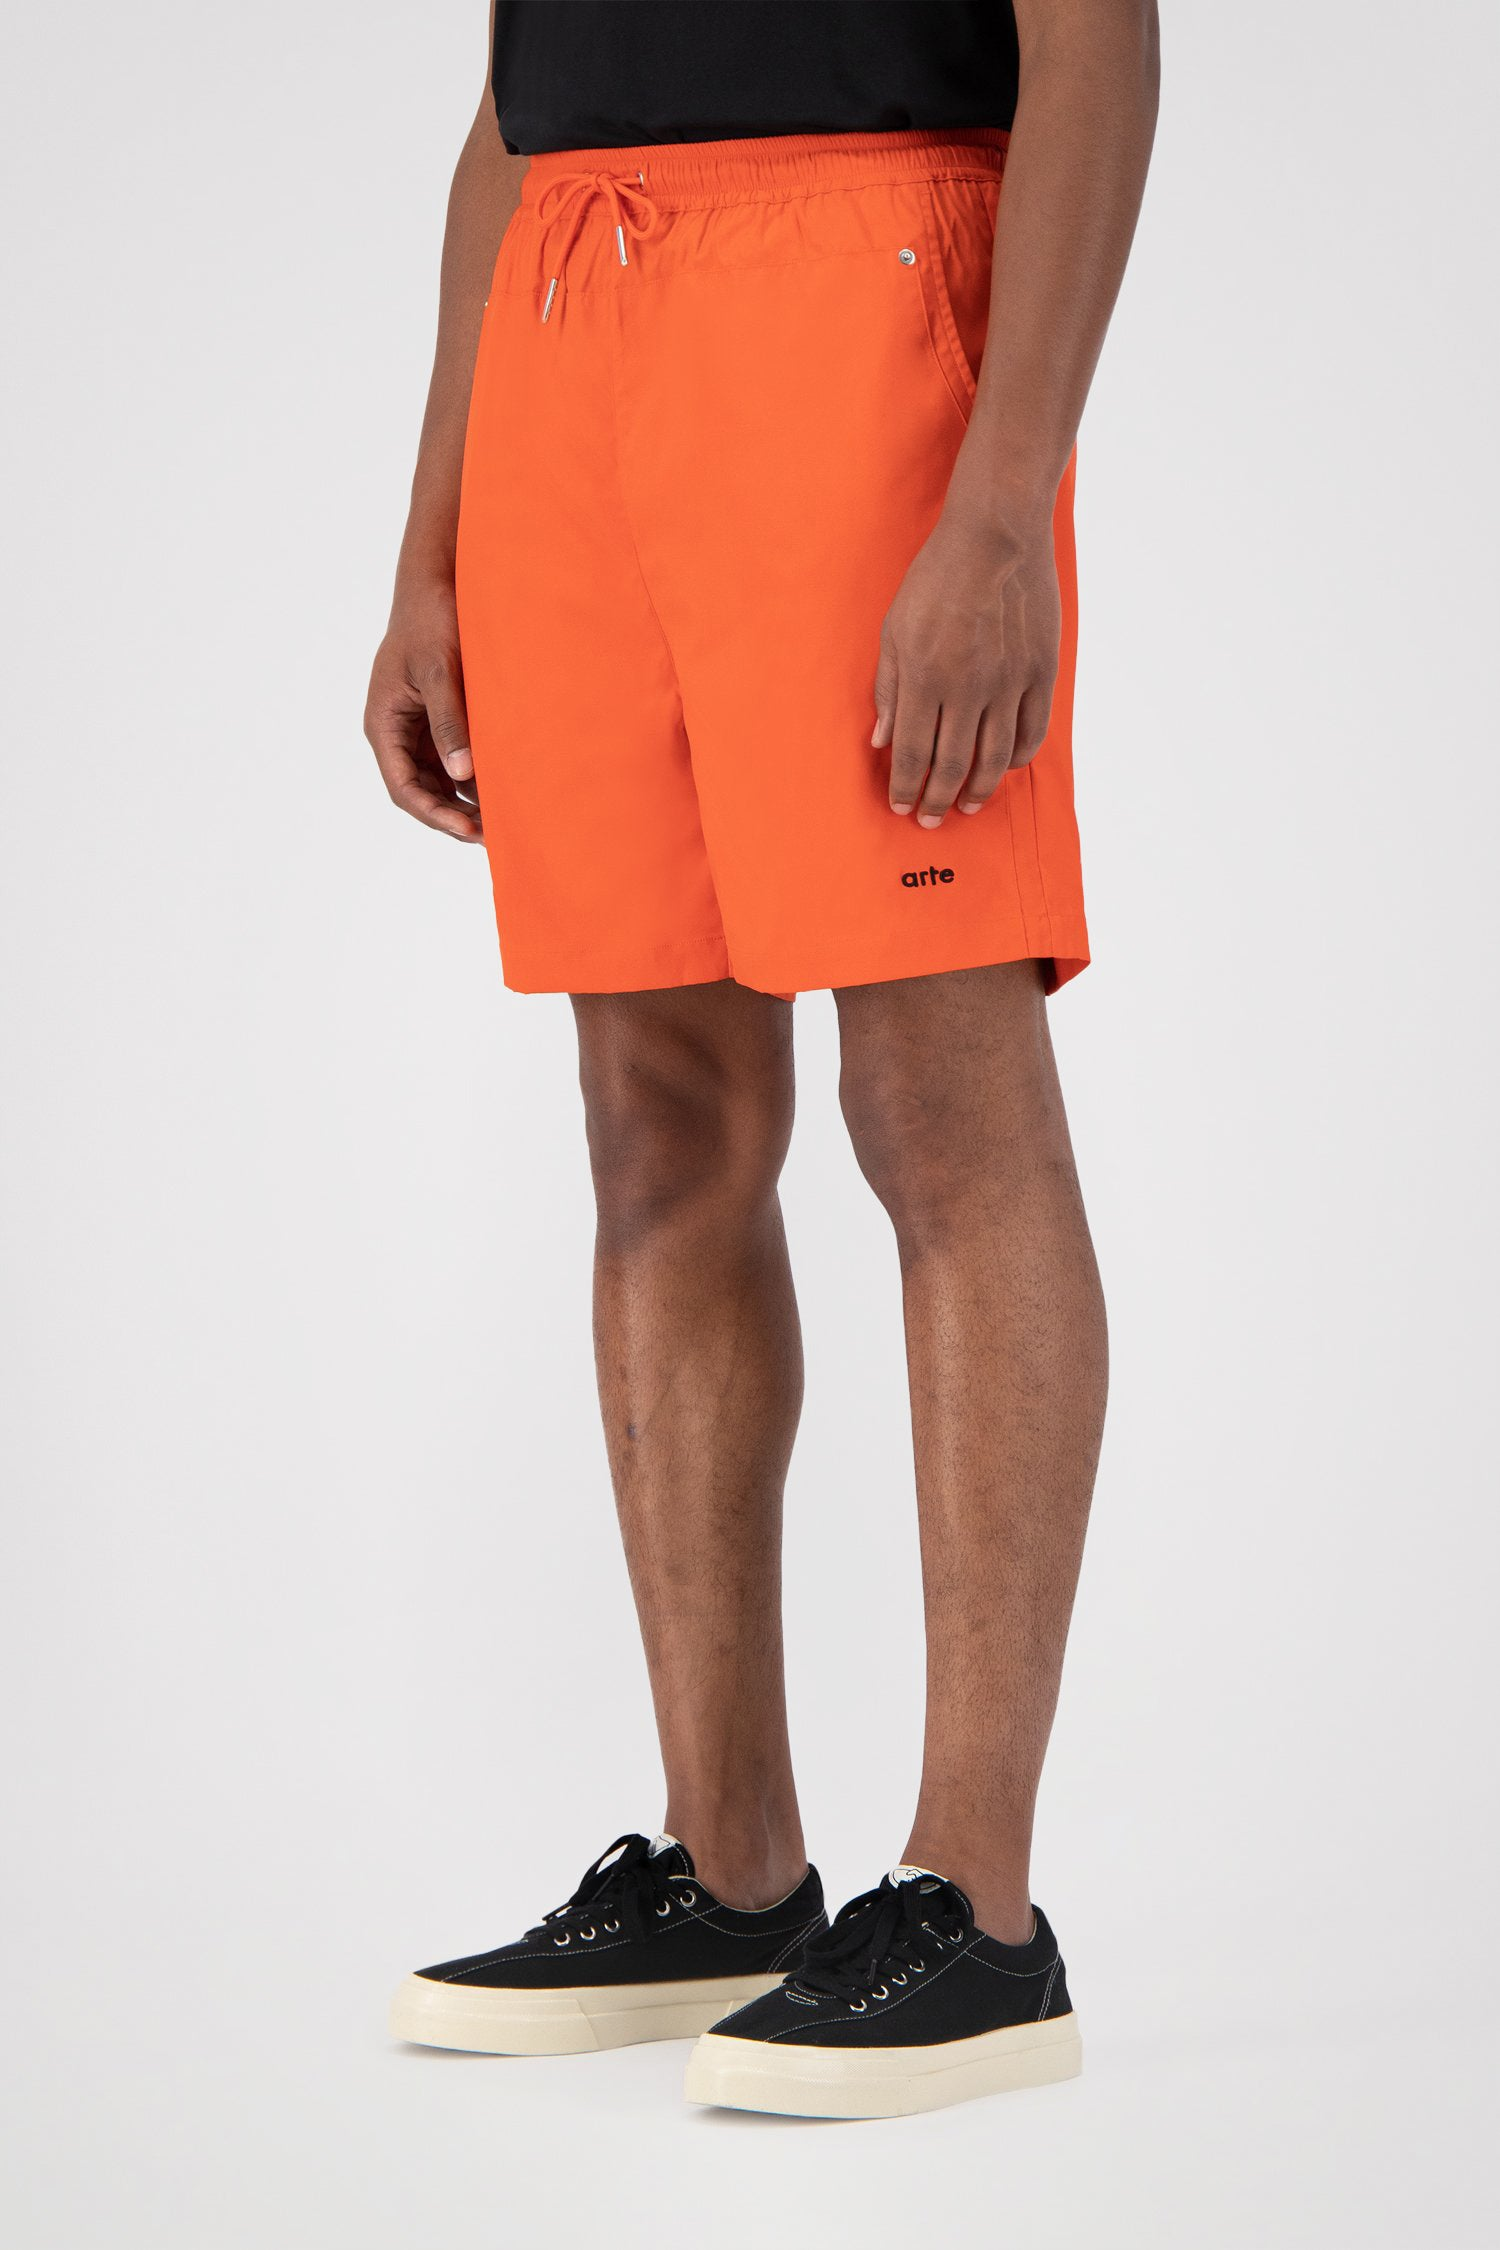 Stanley Short - Orange